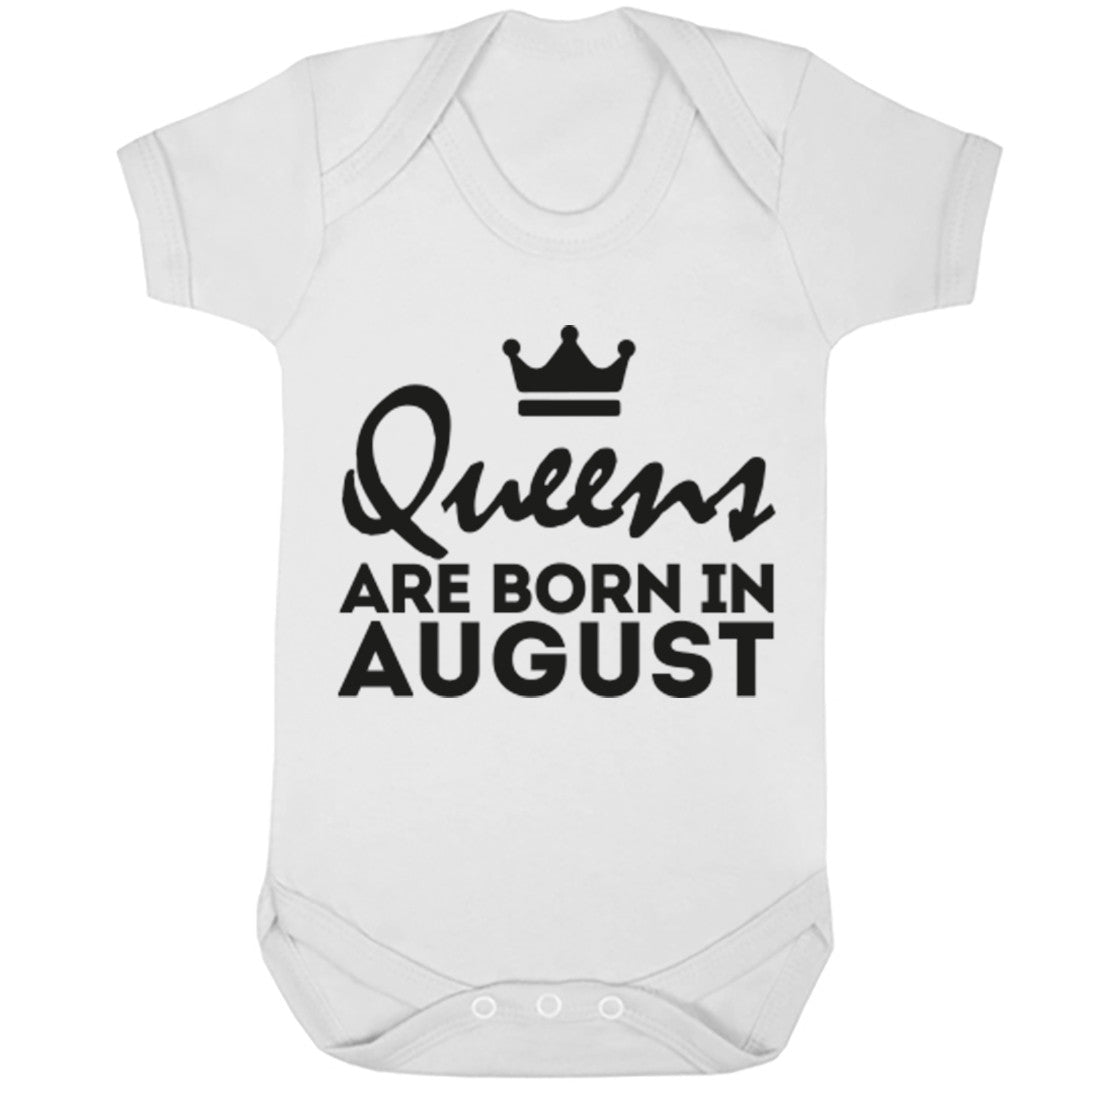 Queens Are Born In August Baby Vest K1679 - Illustrated Identity Ltd.